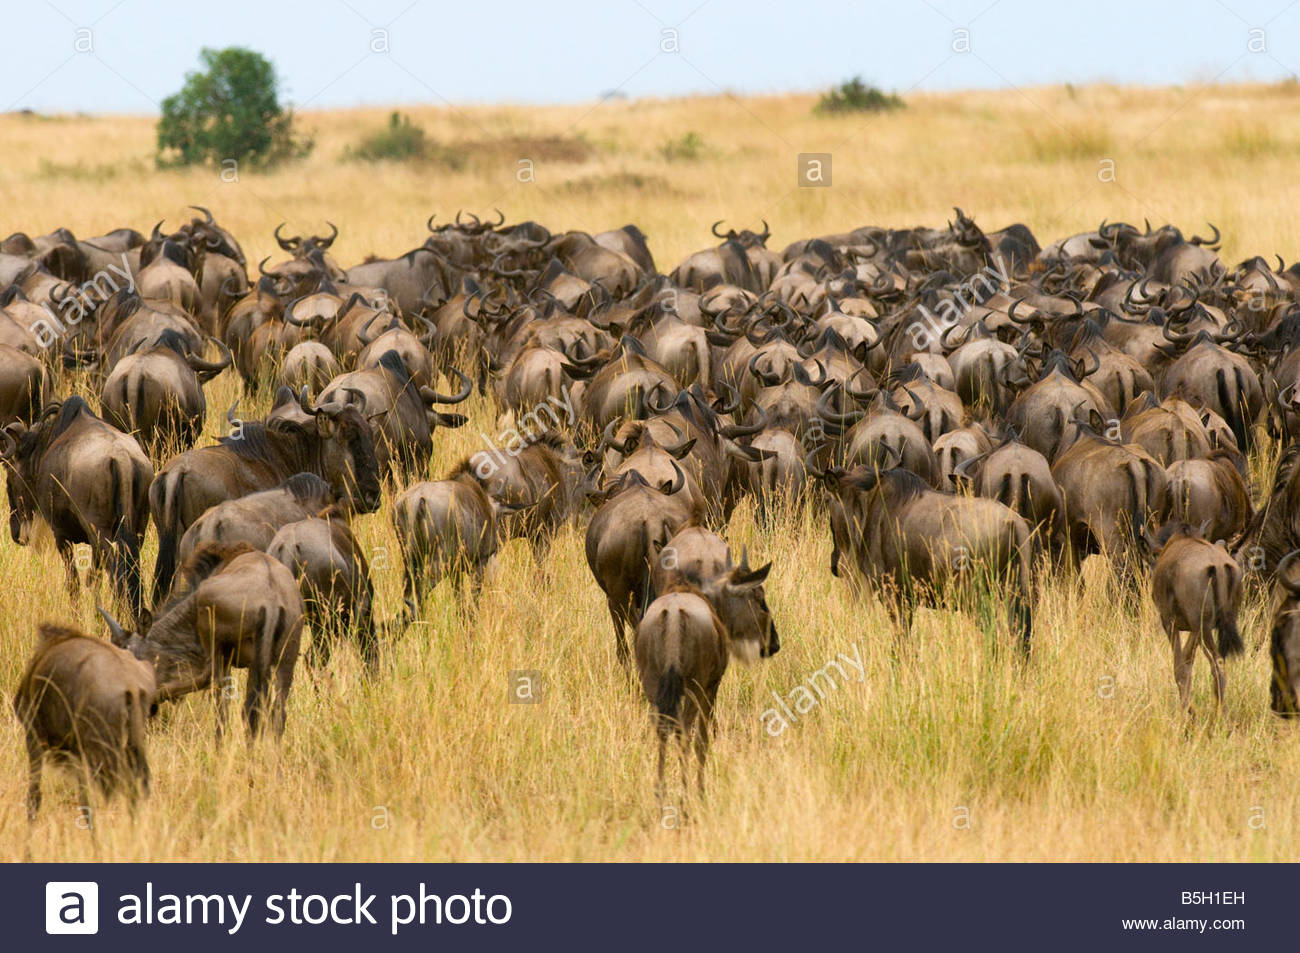 Herds of wildebeest arriving in Masai Mara National Reserve Kenya from Tanzania as part of the annual Great Migration - Stock Image